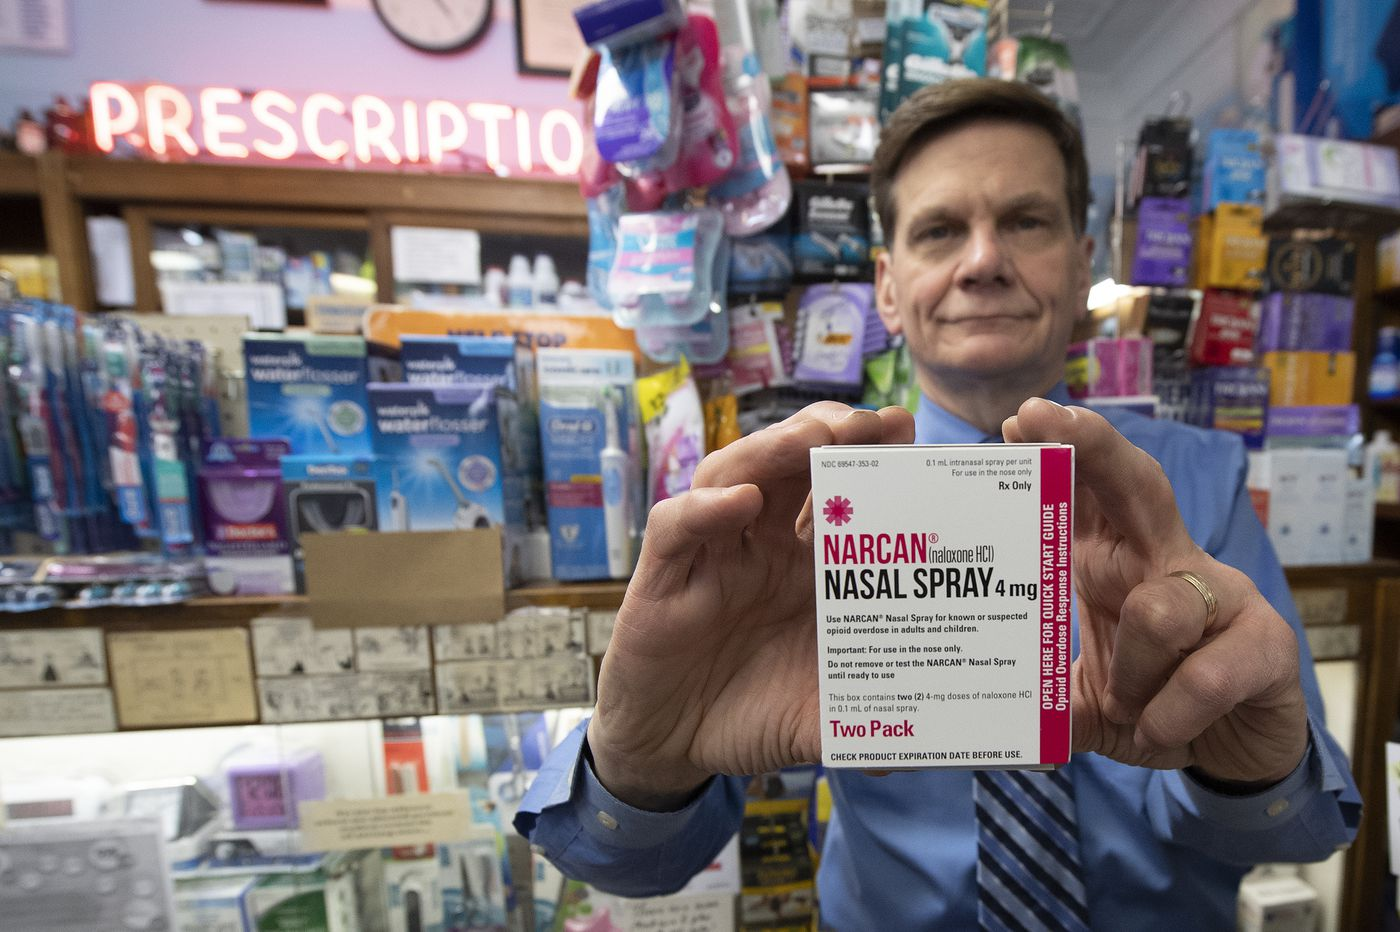 With Narcan, government intrusion is being forgiven | Stu Bykofsky